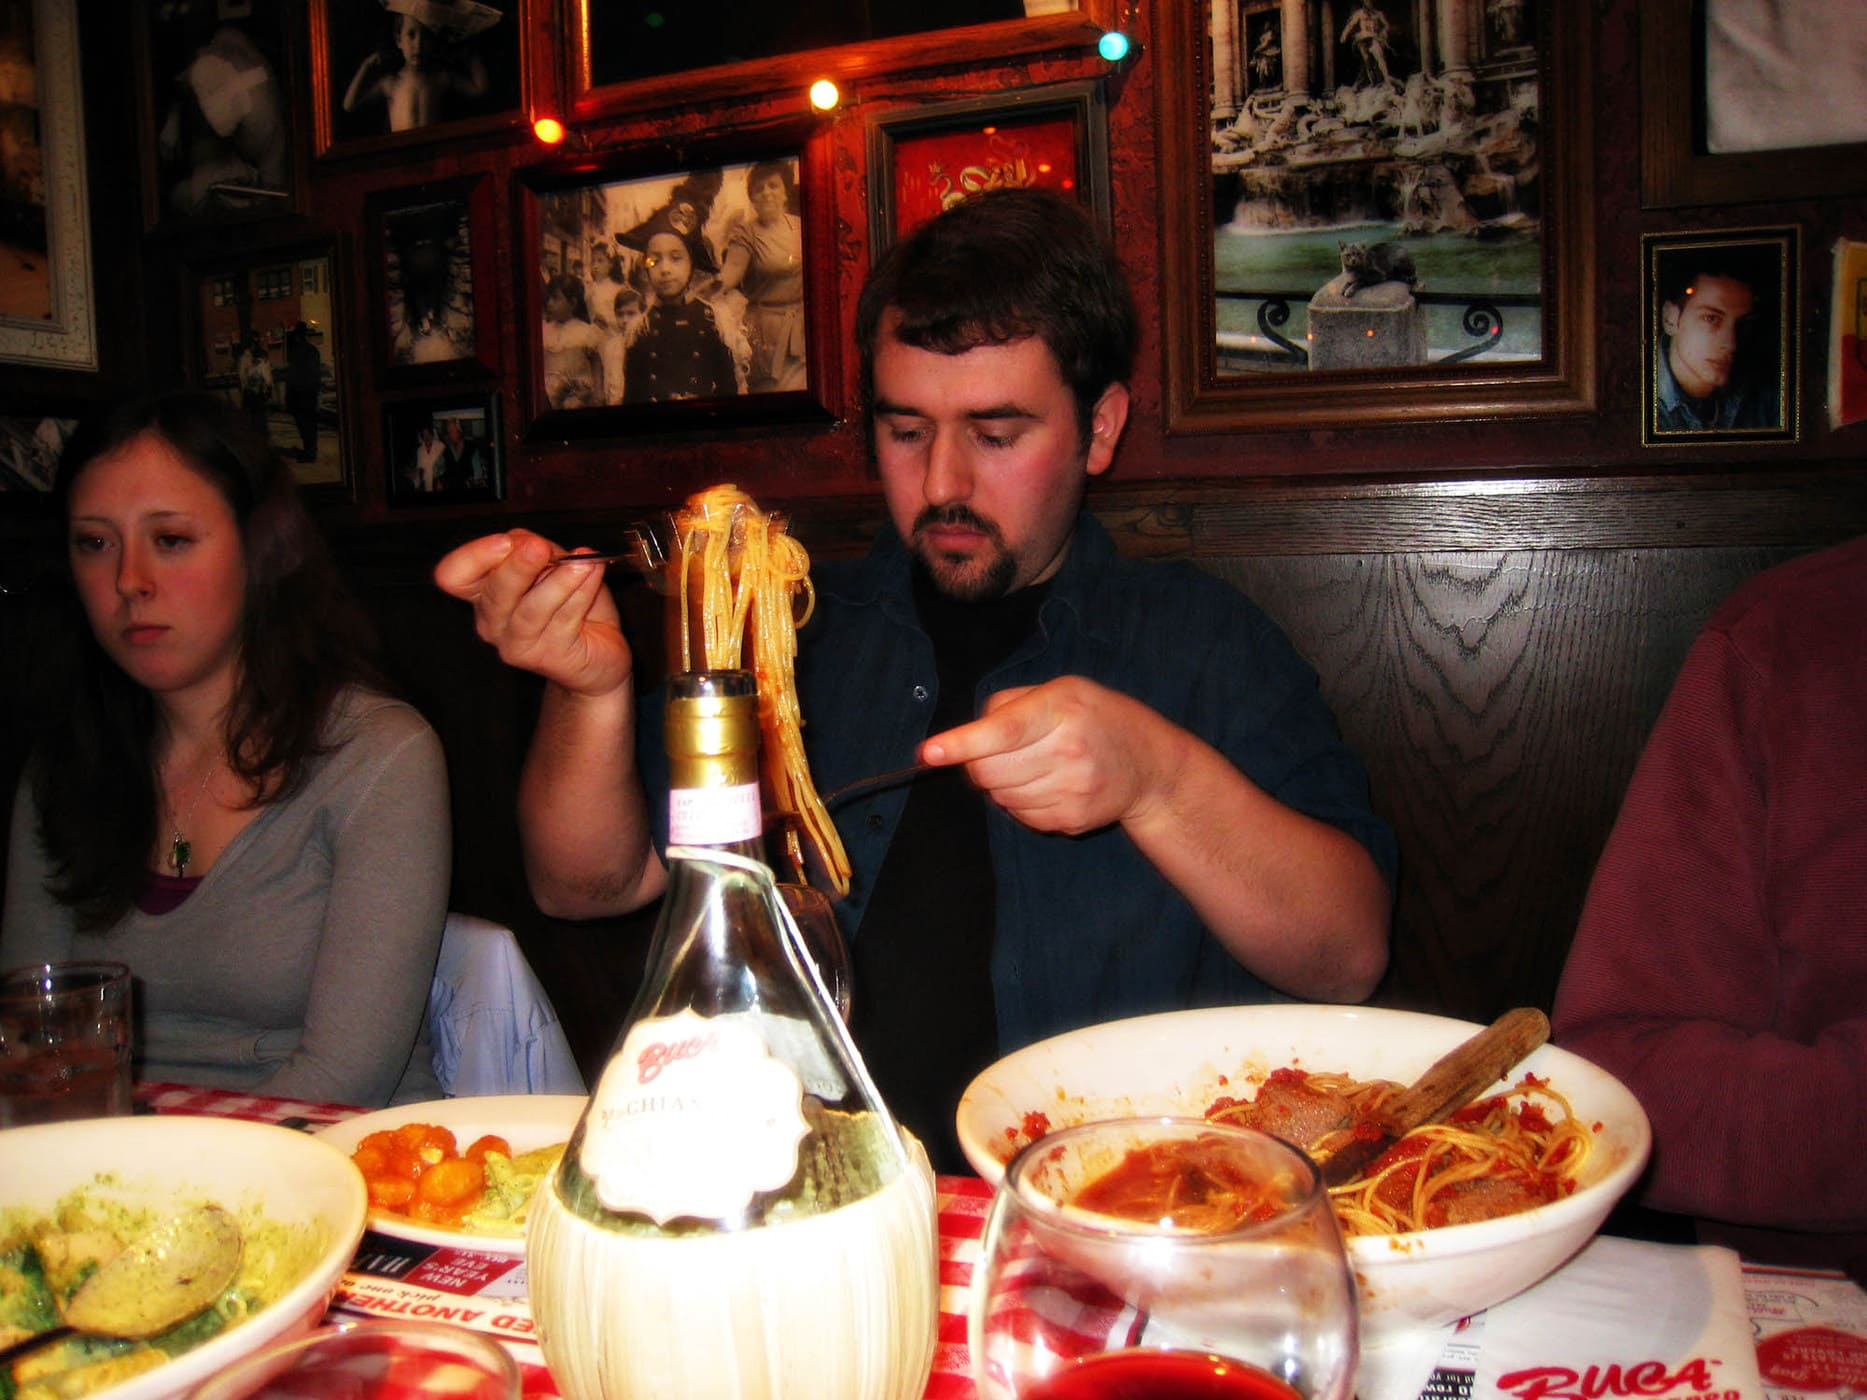 Alina's birthday party at Bucca di Beppo